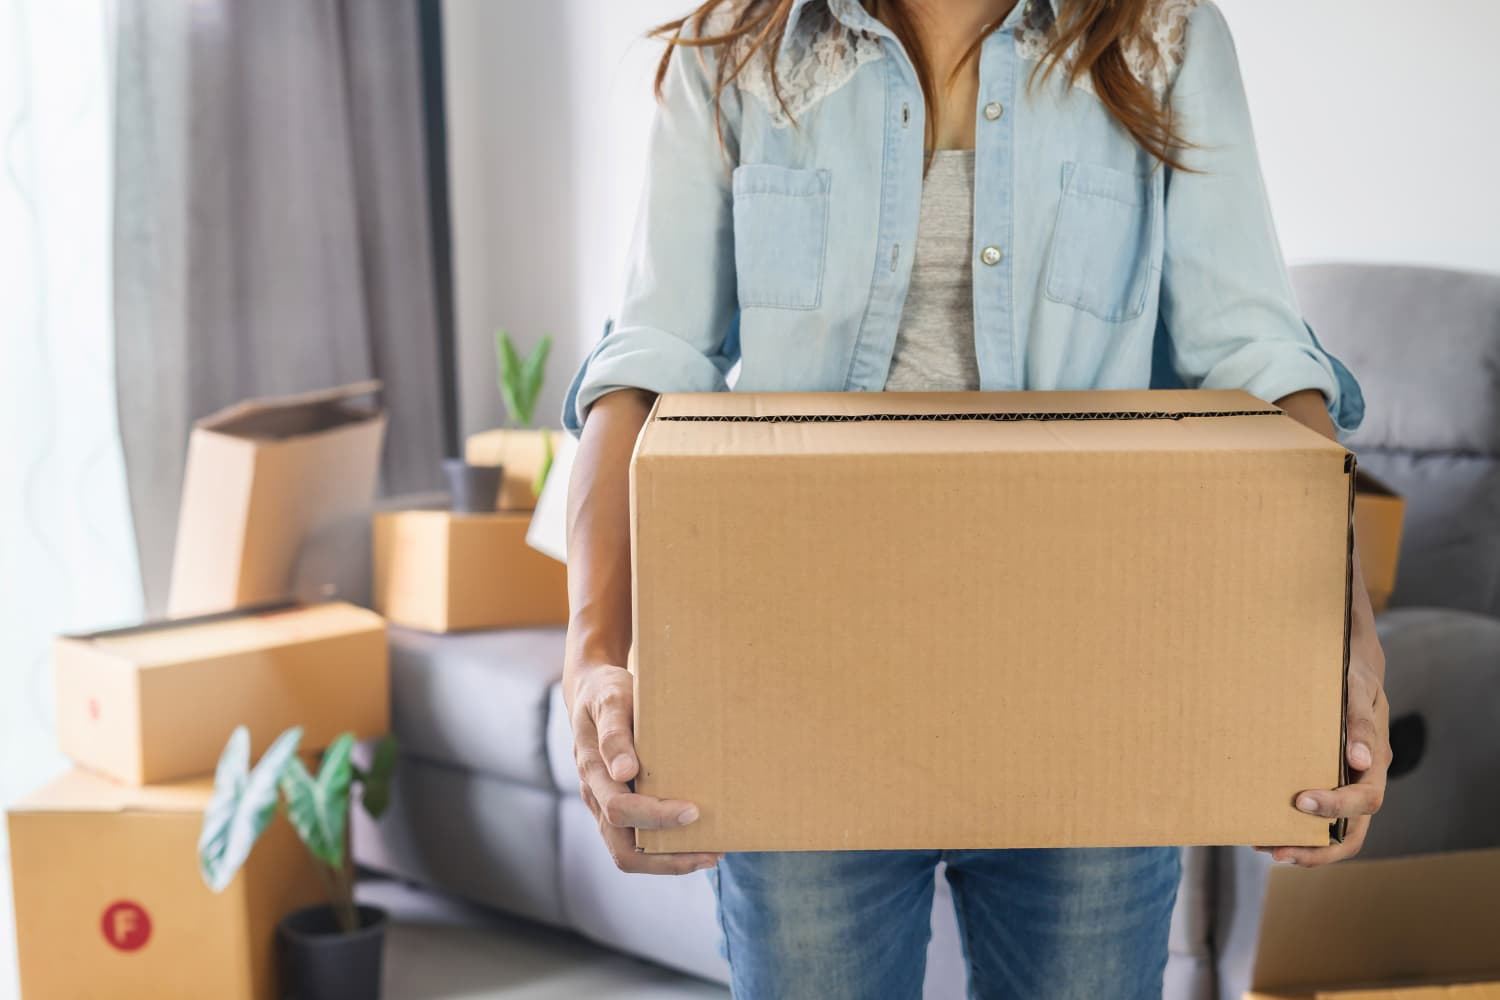 6 Helpful Decluttering Tips, According to People Who Have Moved 10+ Times